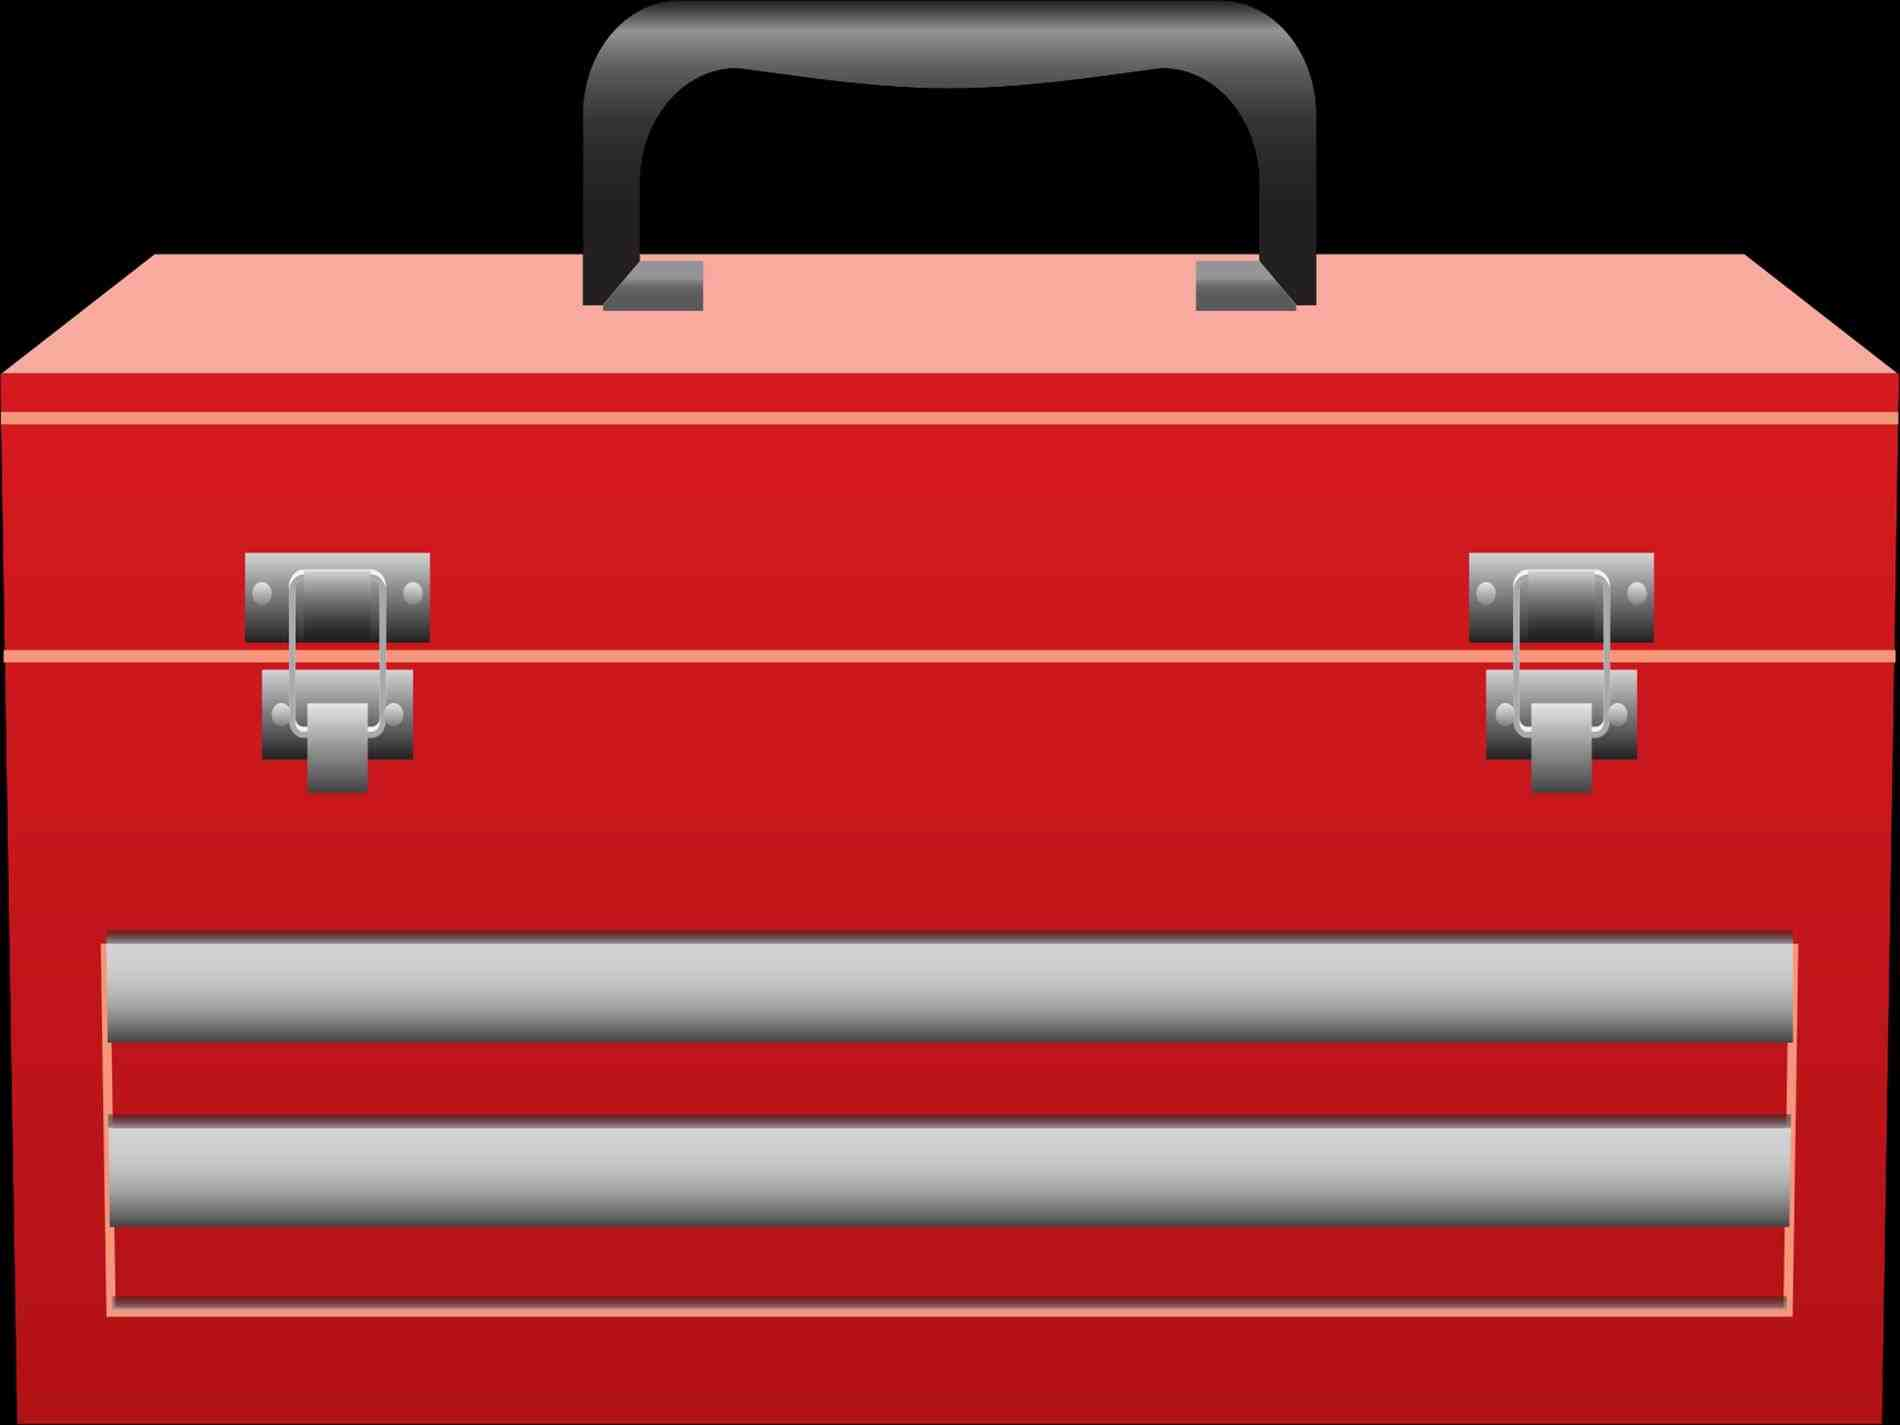 Toolbox clipart tool box. The images collection of